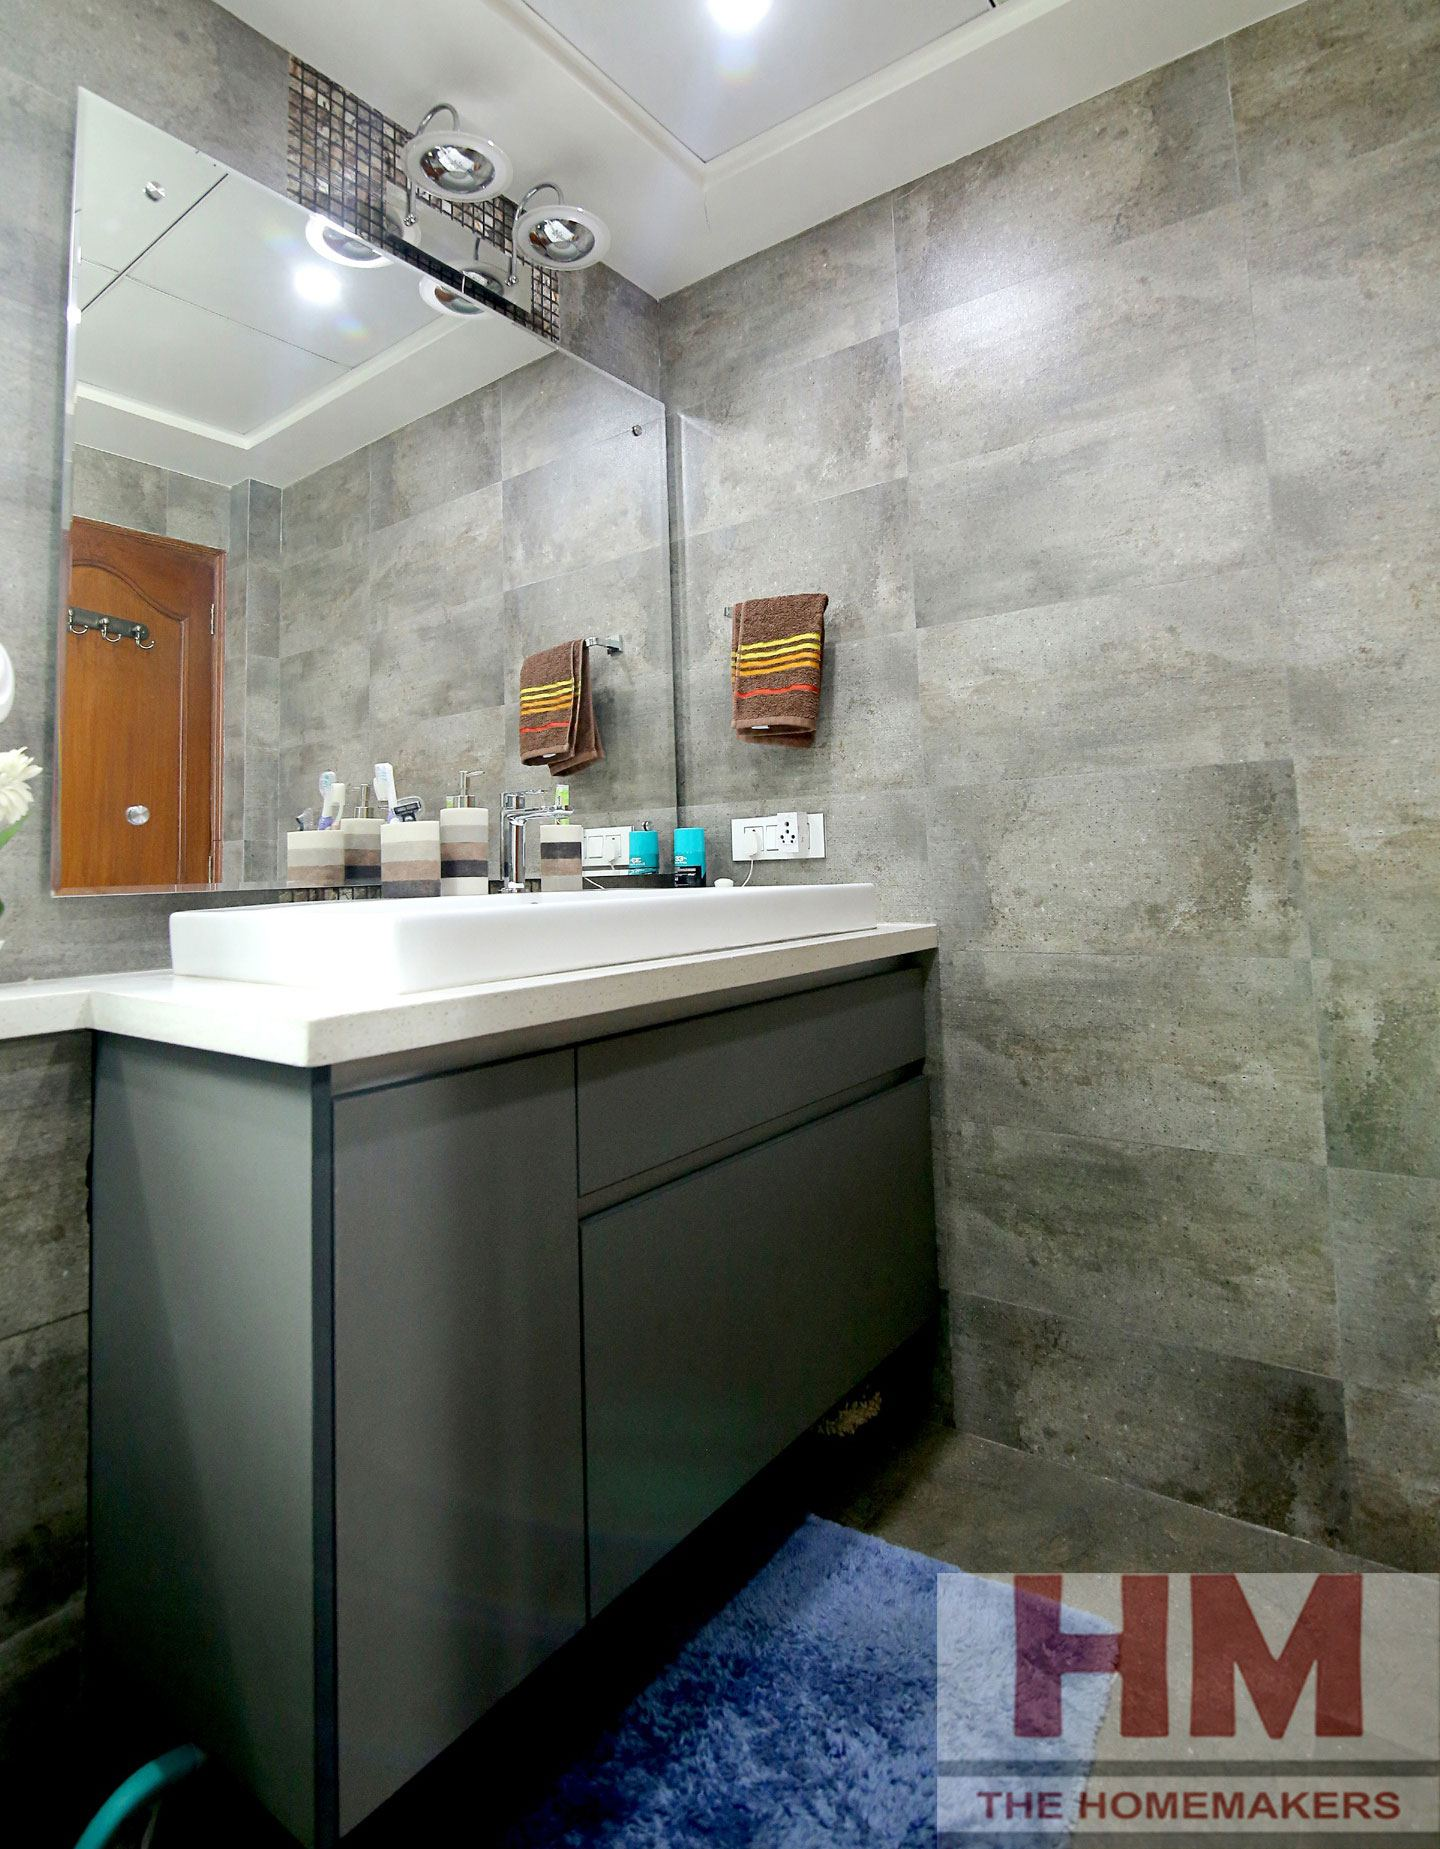 Bathroom vanities cabinets manufacturers in delhi ncr gurgaon india for Bathroom cabinetry manufacturers